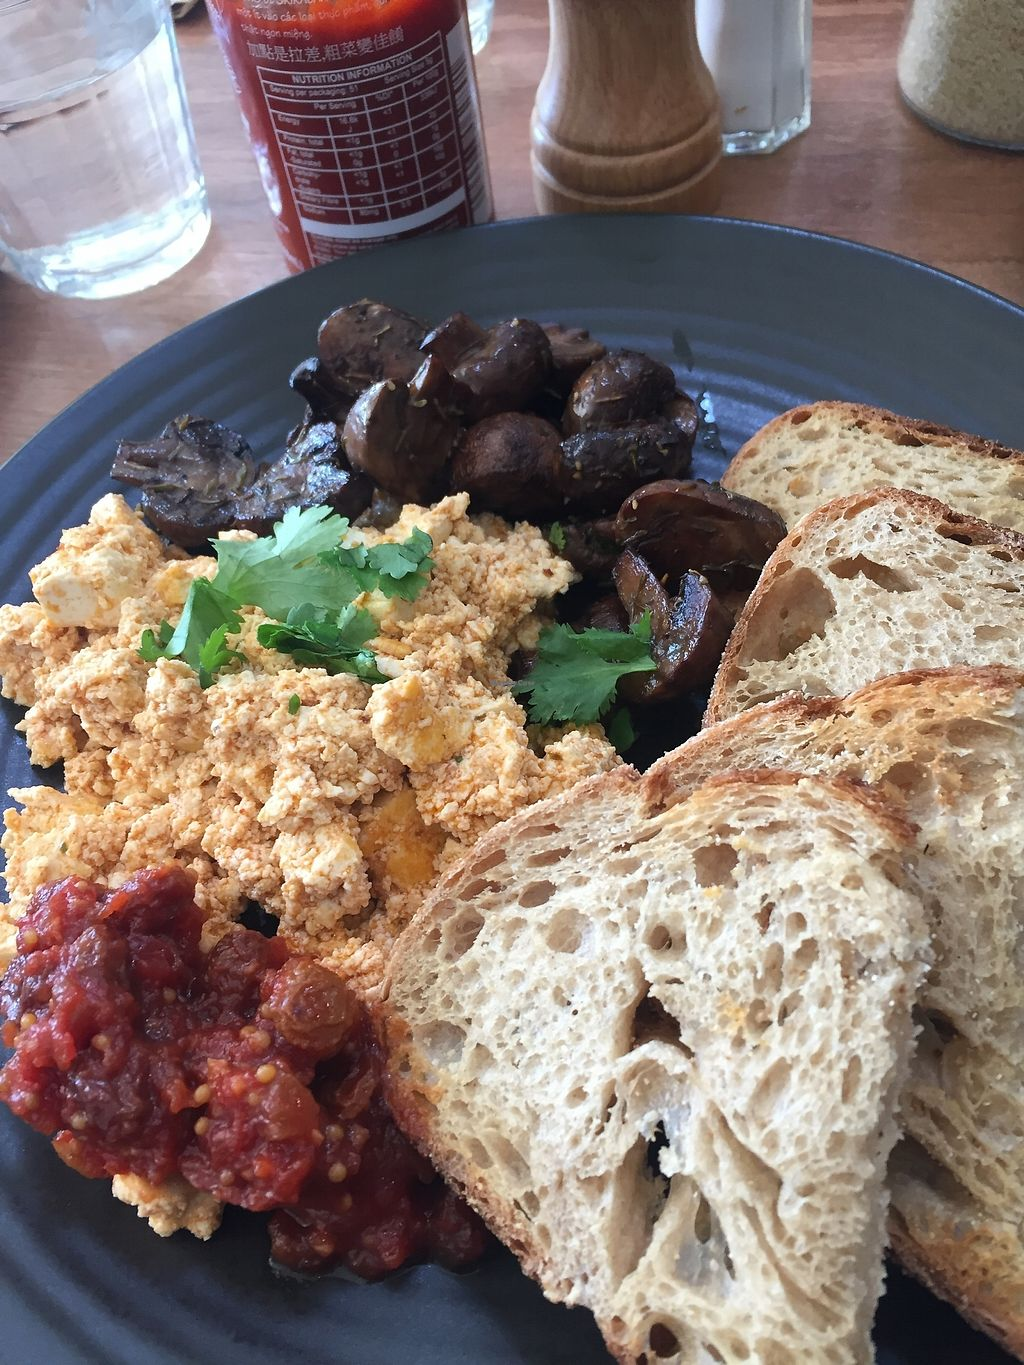 """Photo of One for the Crow  by <a href=""""/members/profile/Kittybiscuit"""">Kittybiscuit</a> <br/>Scrambled tofu with mushrooms <br/> March 12, 2018  - <a href='/contact/abuse/image/112836/369513'>Report</a>"""